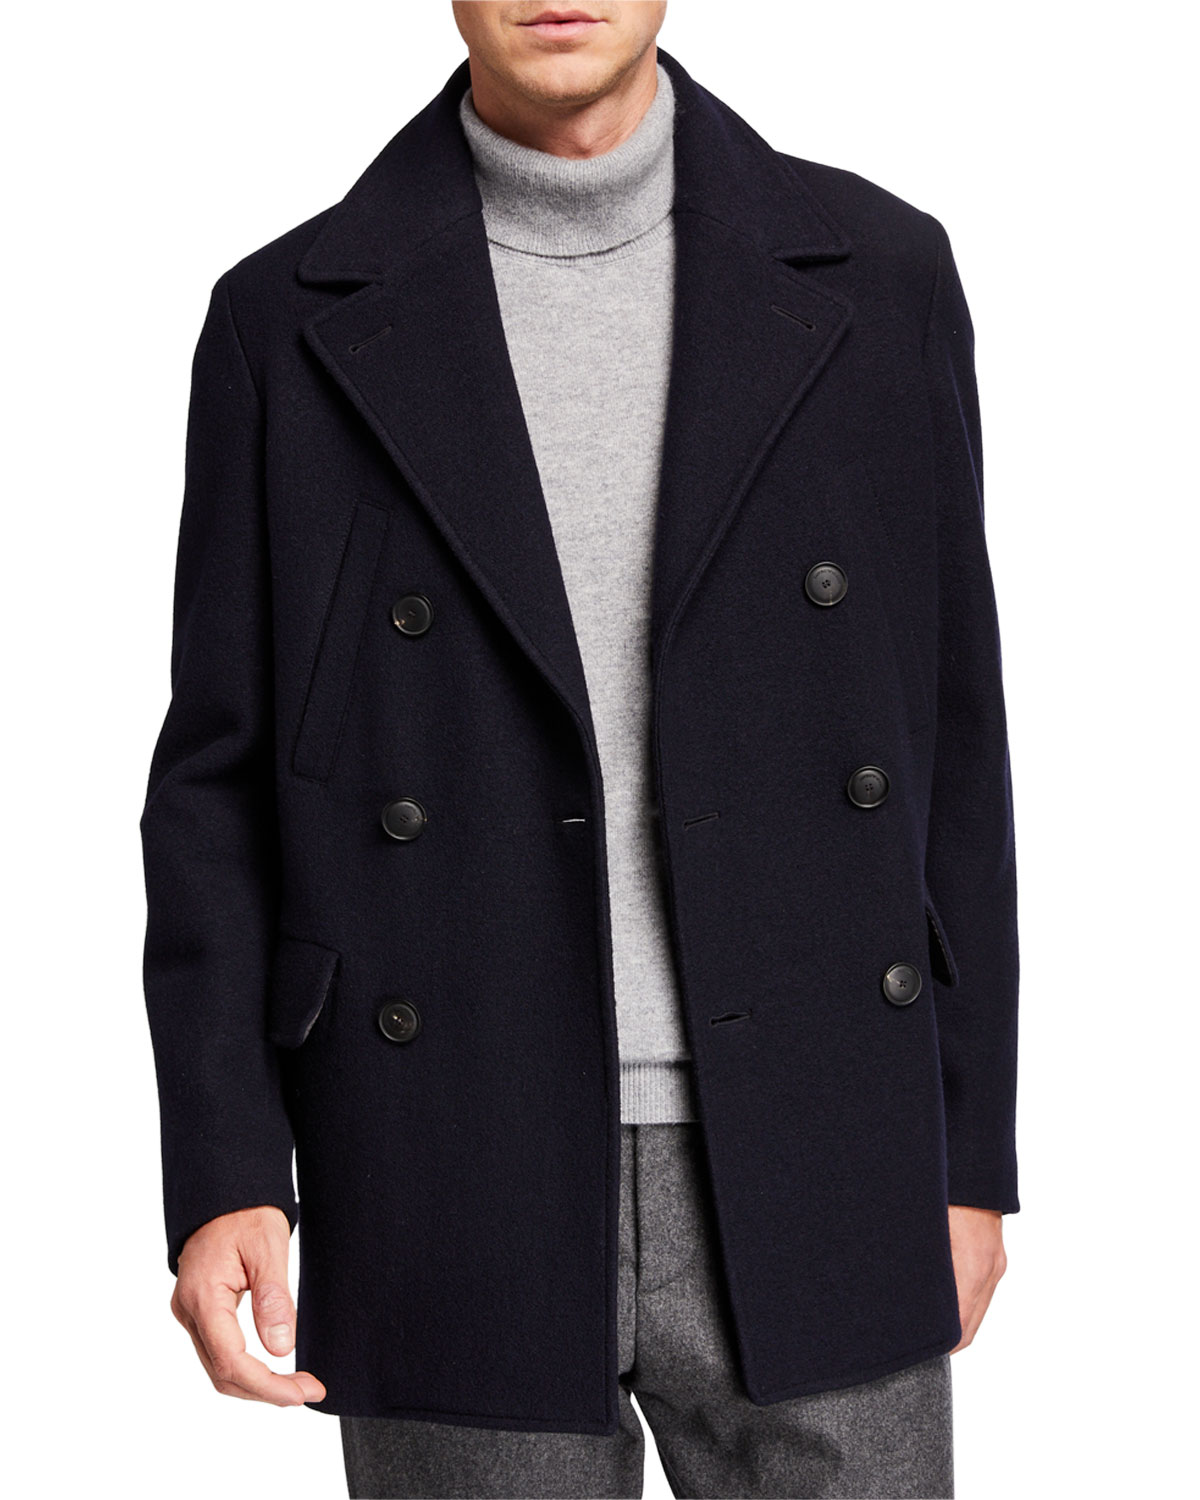 Emporio Armani Coats MEN'S DOUBLE-BREASTED WOOL PEA COAT